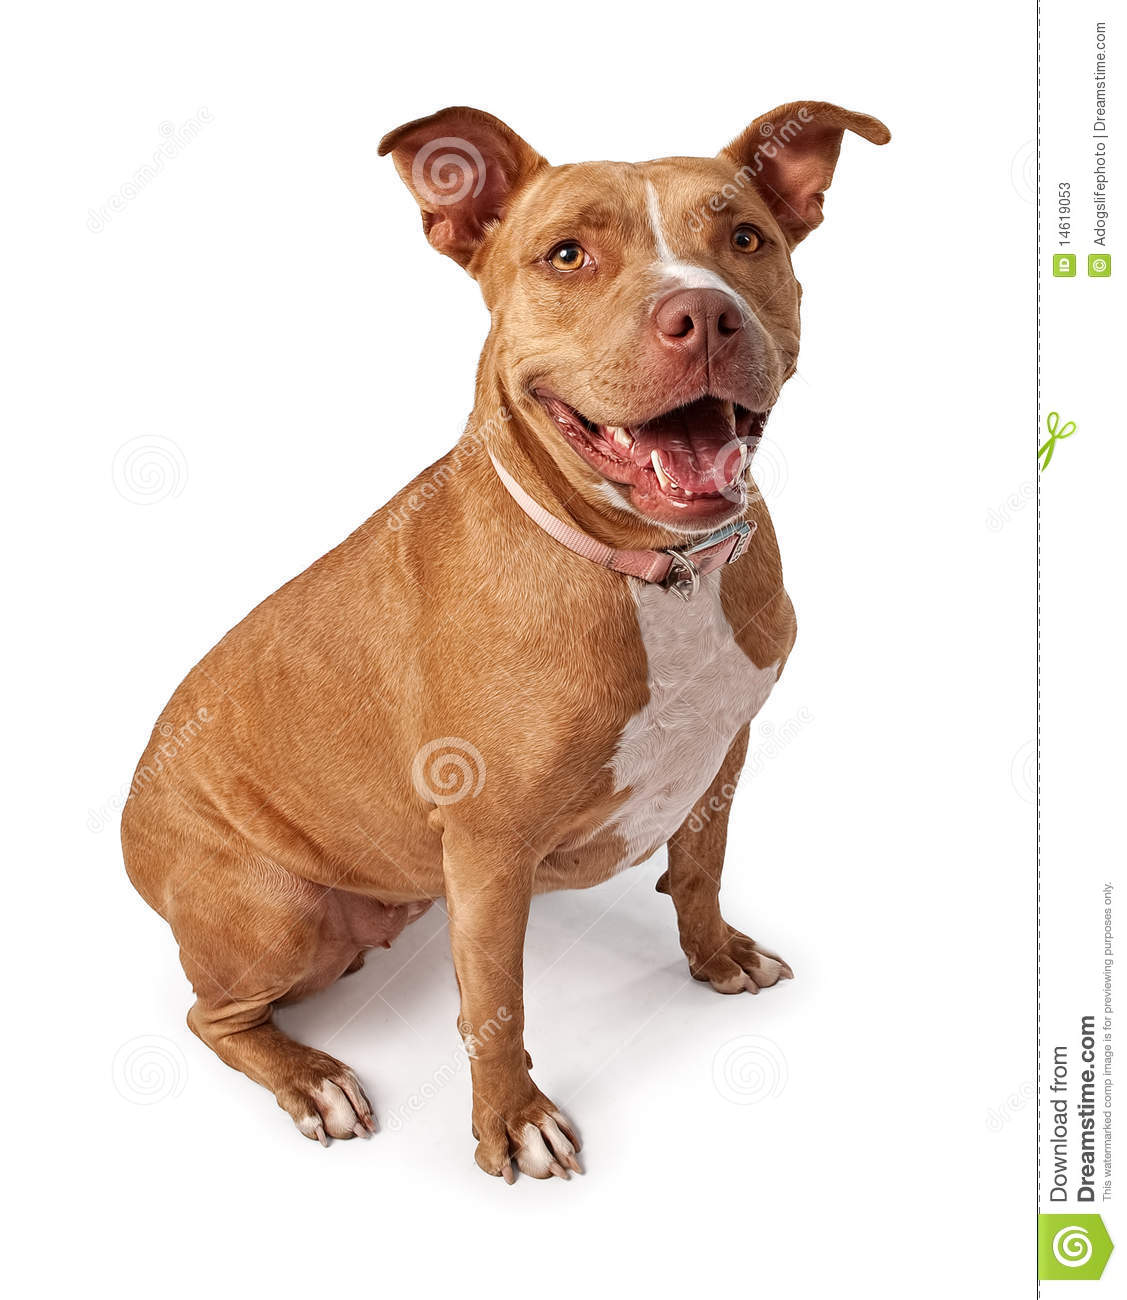 Friendly Pit Bull Stock Photos - Image: 14619053